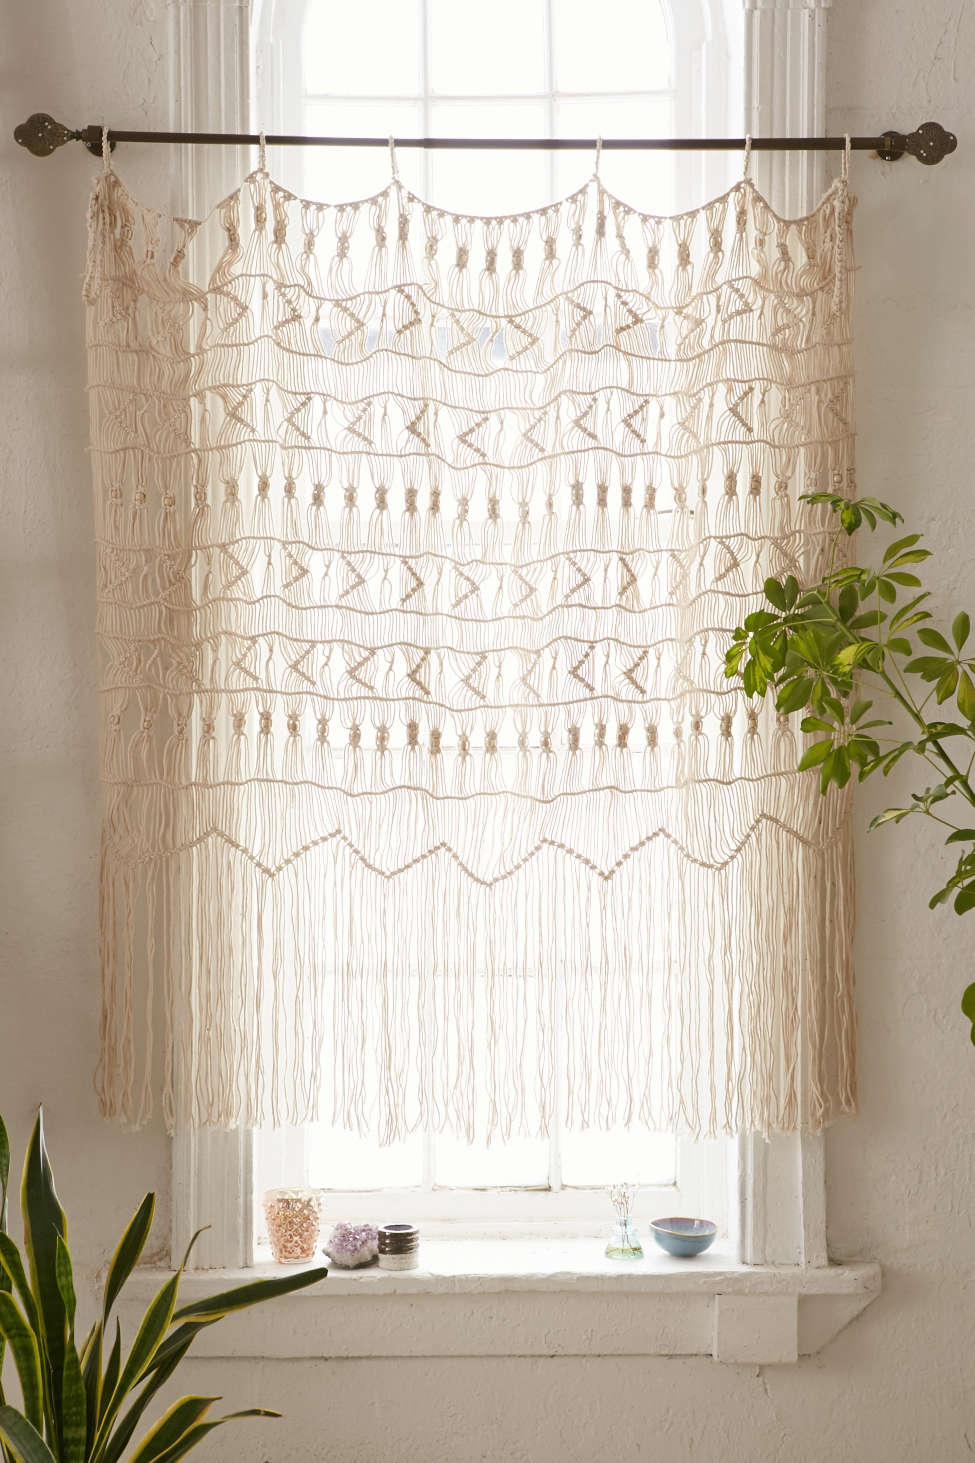 Slide View: 1: Kushi Macrame Wall Hanging